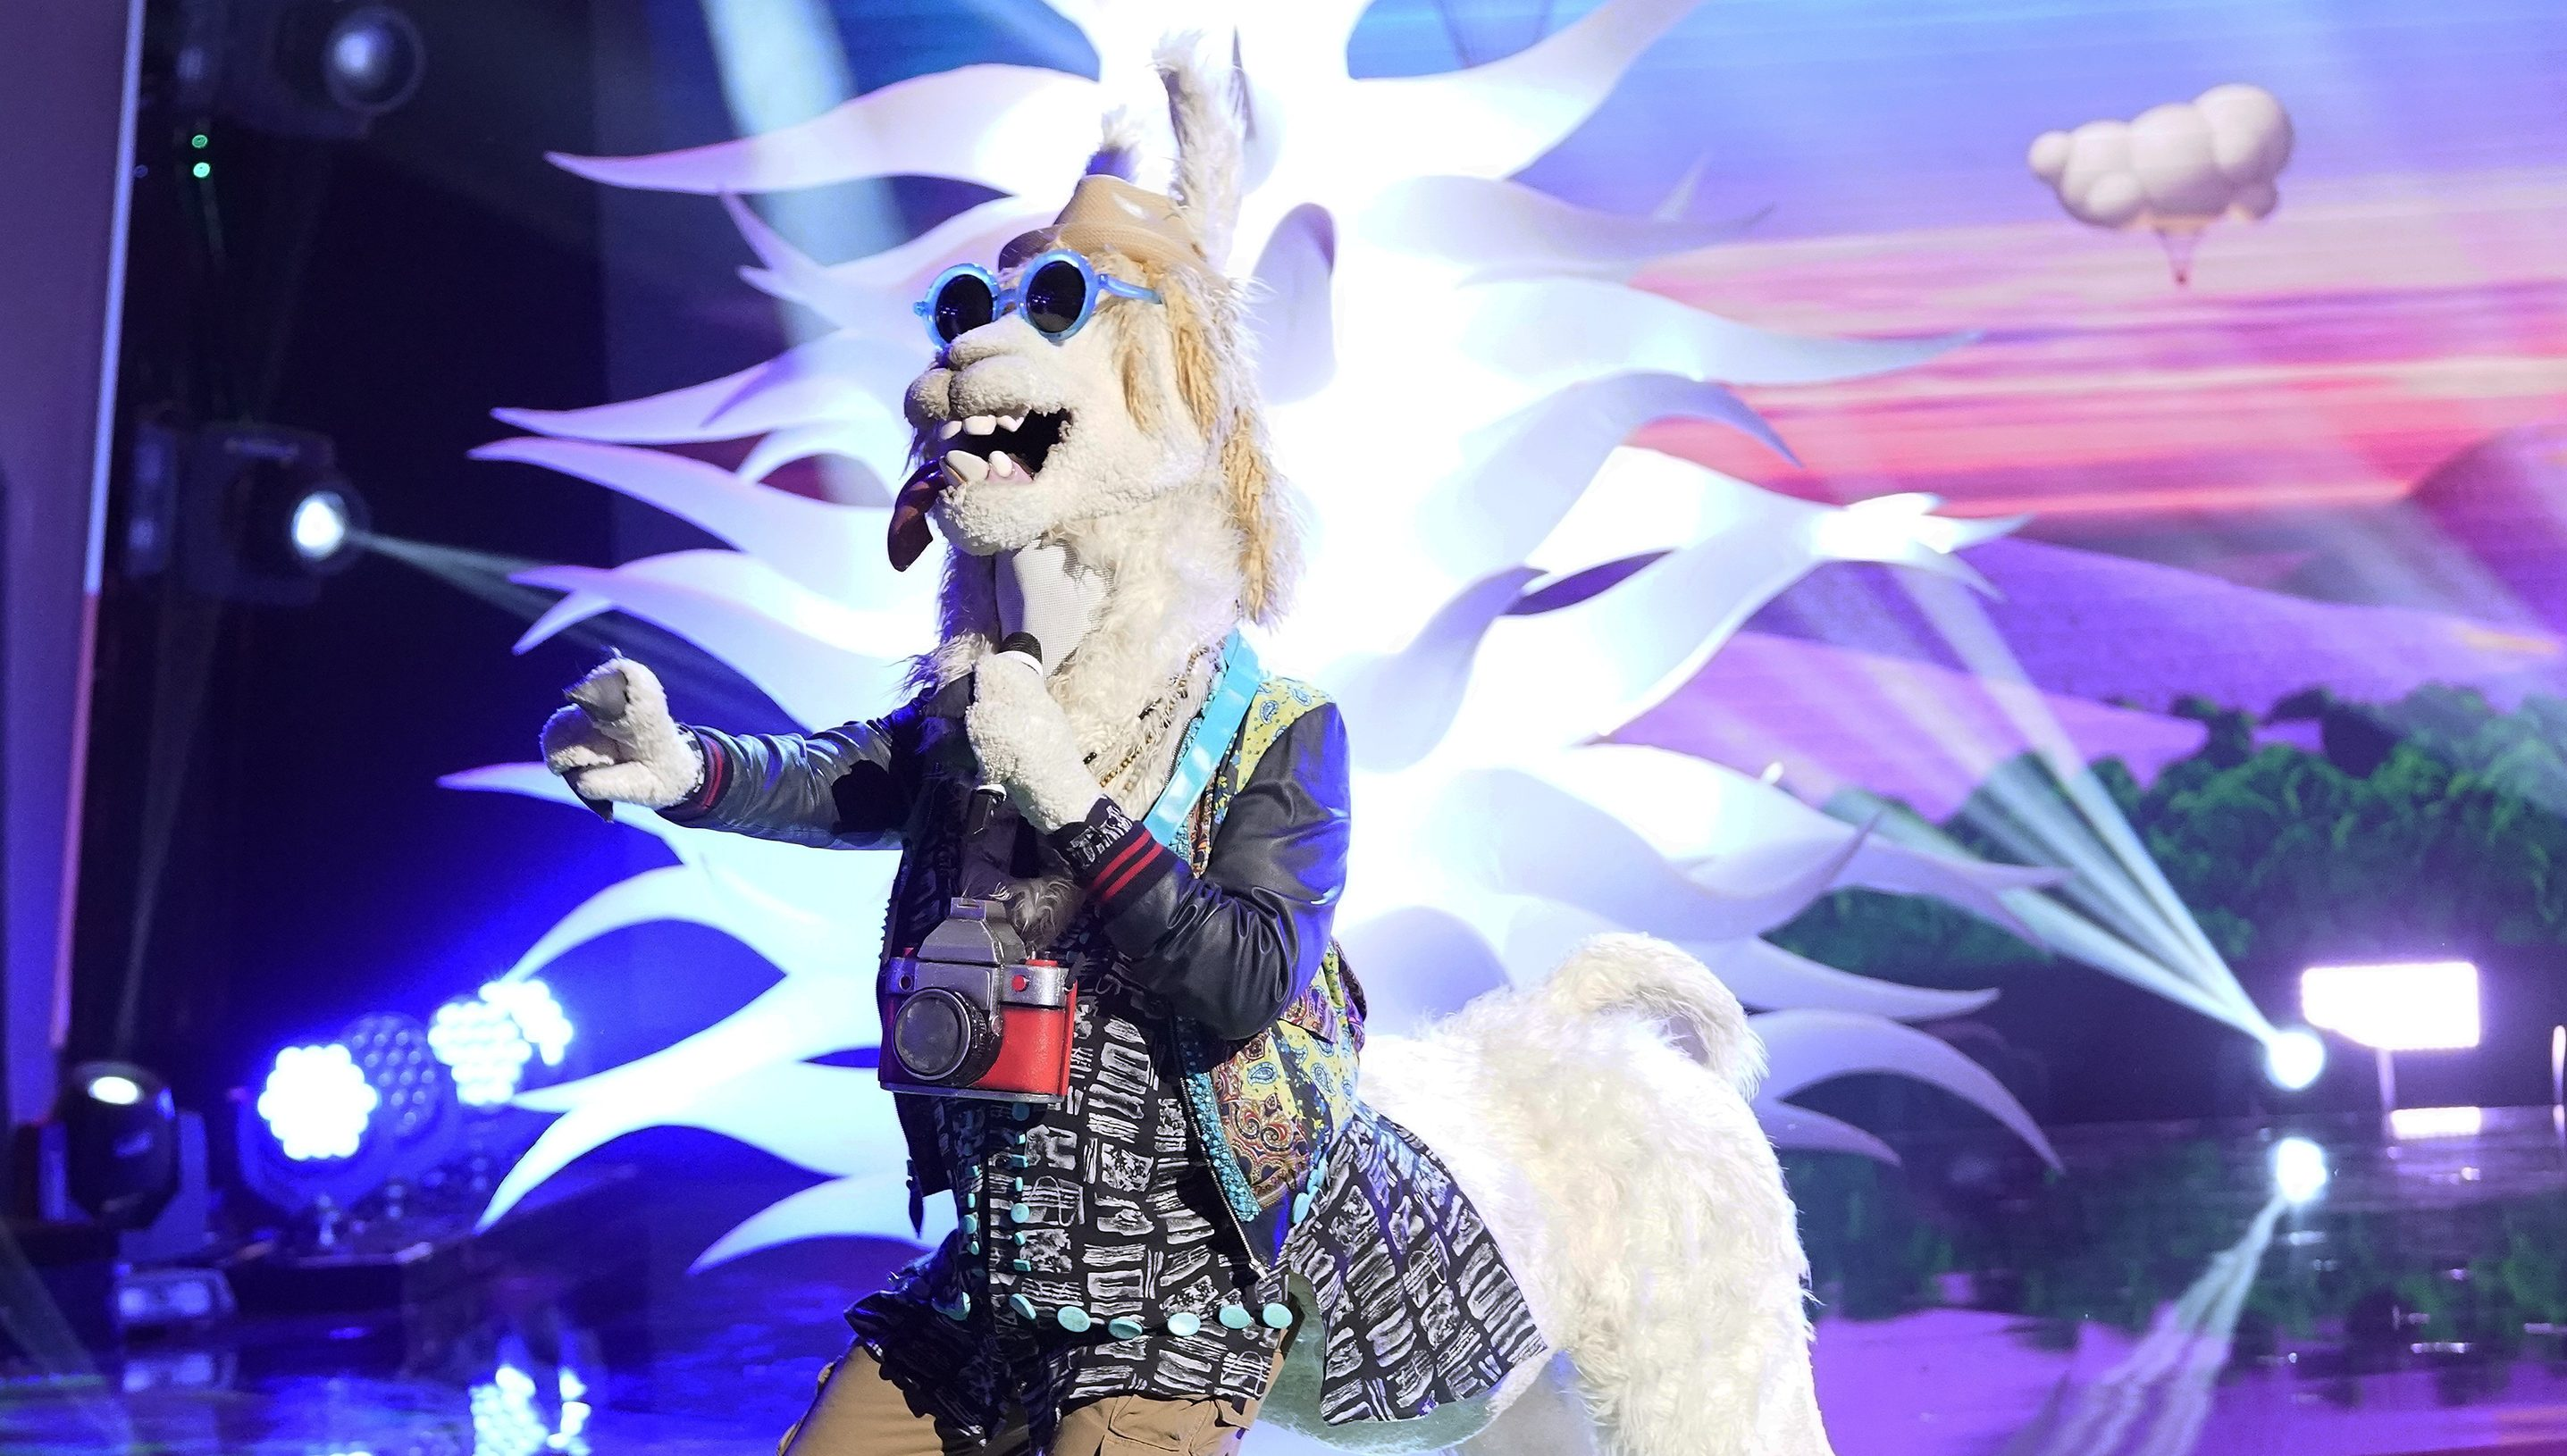 The Masked Singer Reveals The Identity Of The Llama Variety